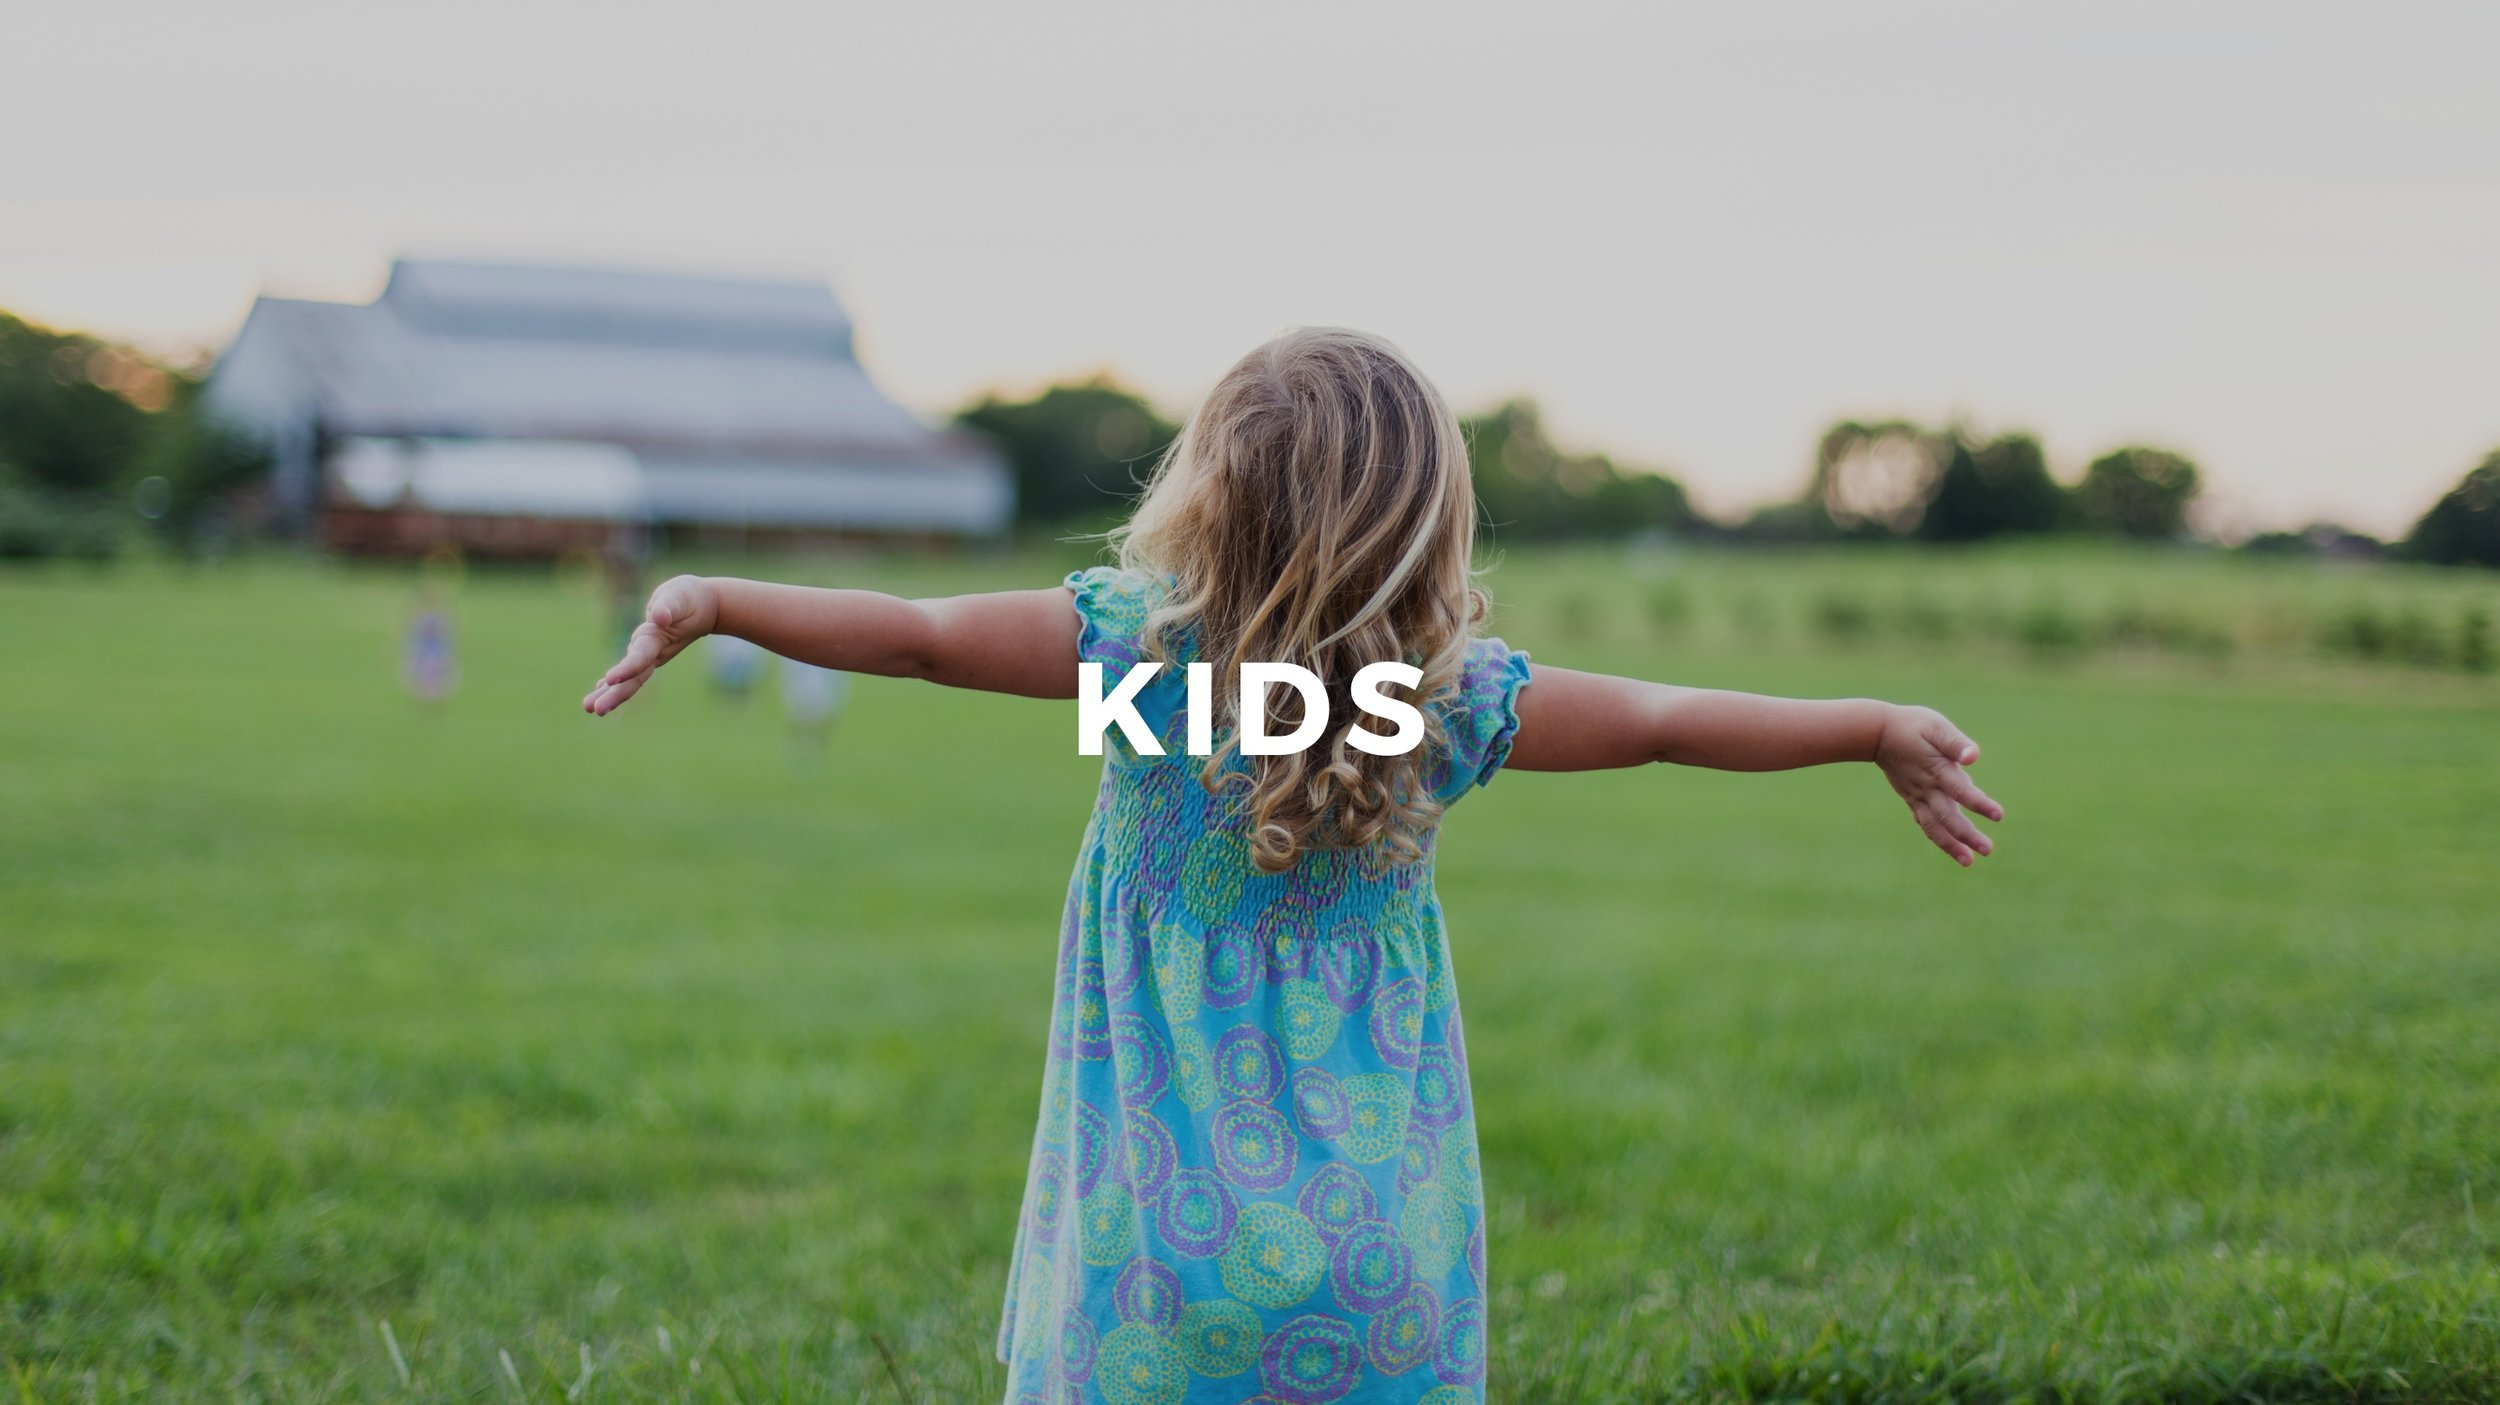 - Providing a safe, fun and engaging environment for kids to discover who God has called them be and to do what God has called them to do.